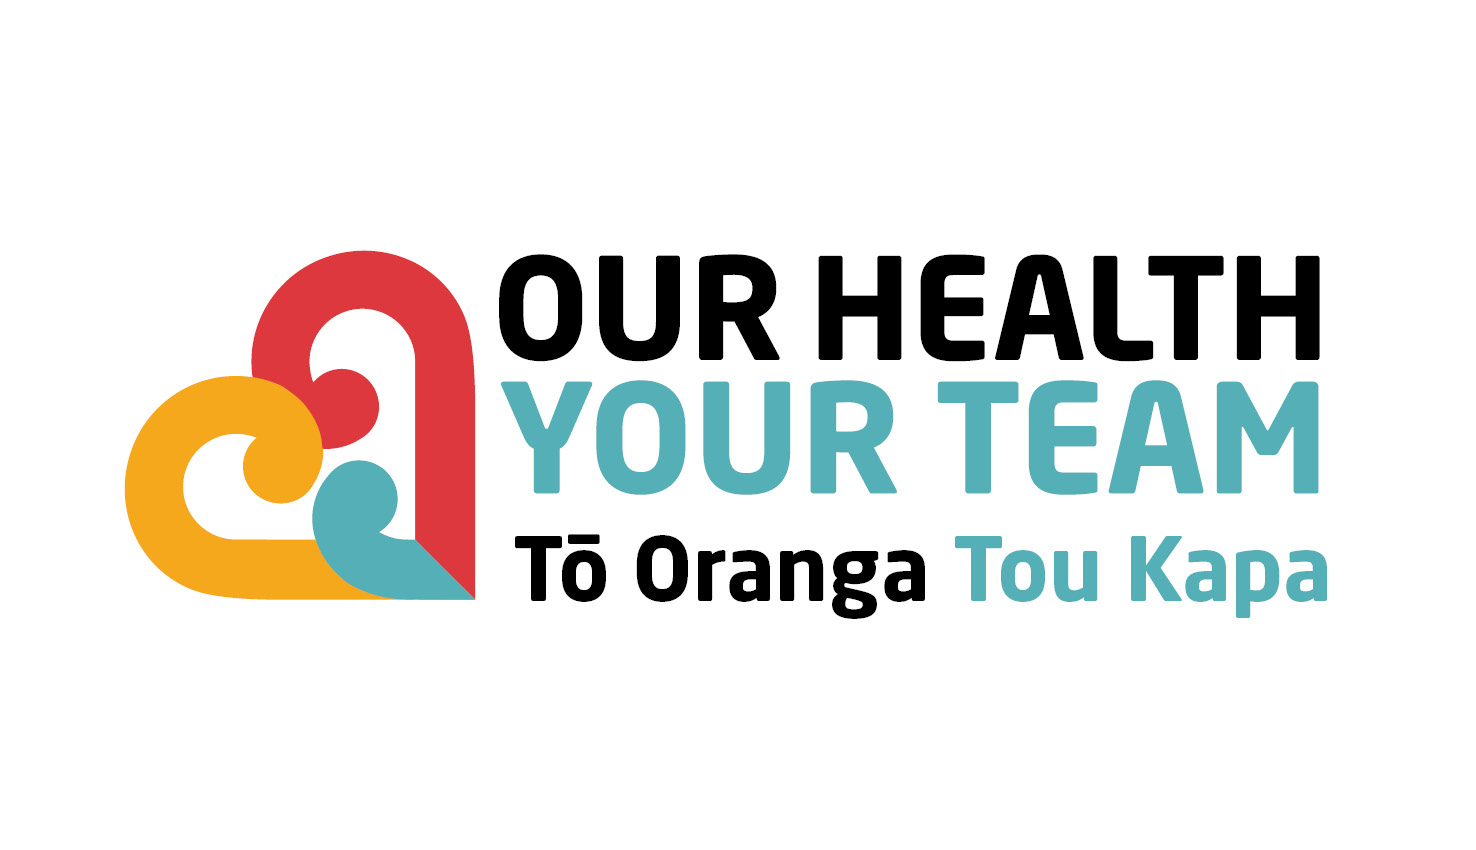 Our-health-your-team-banner.jpg